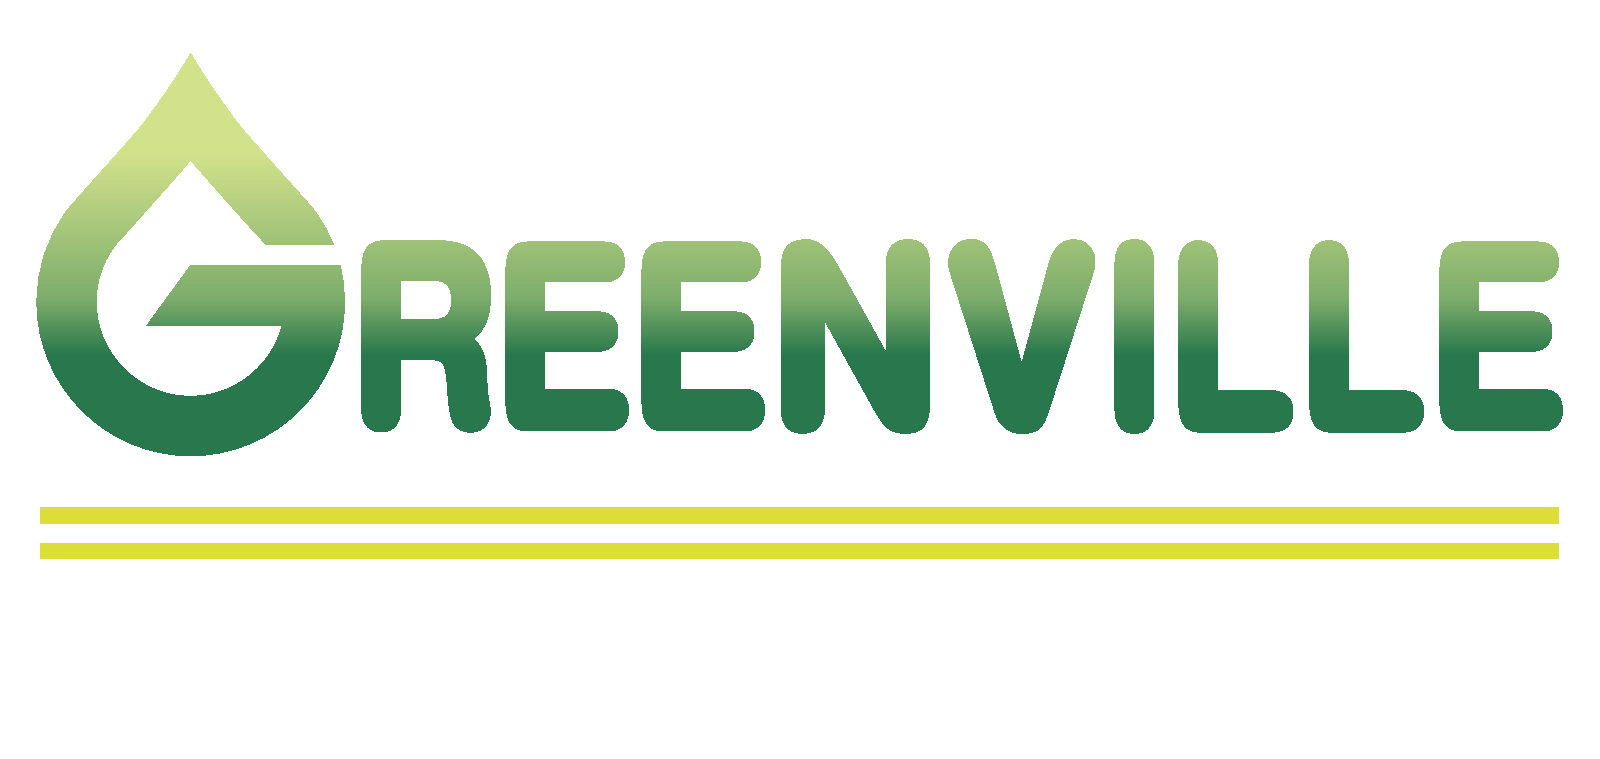 Greenville Liquid Plant Foods Ltd. Logo